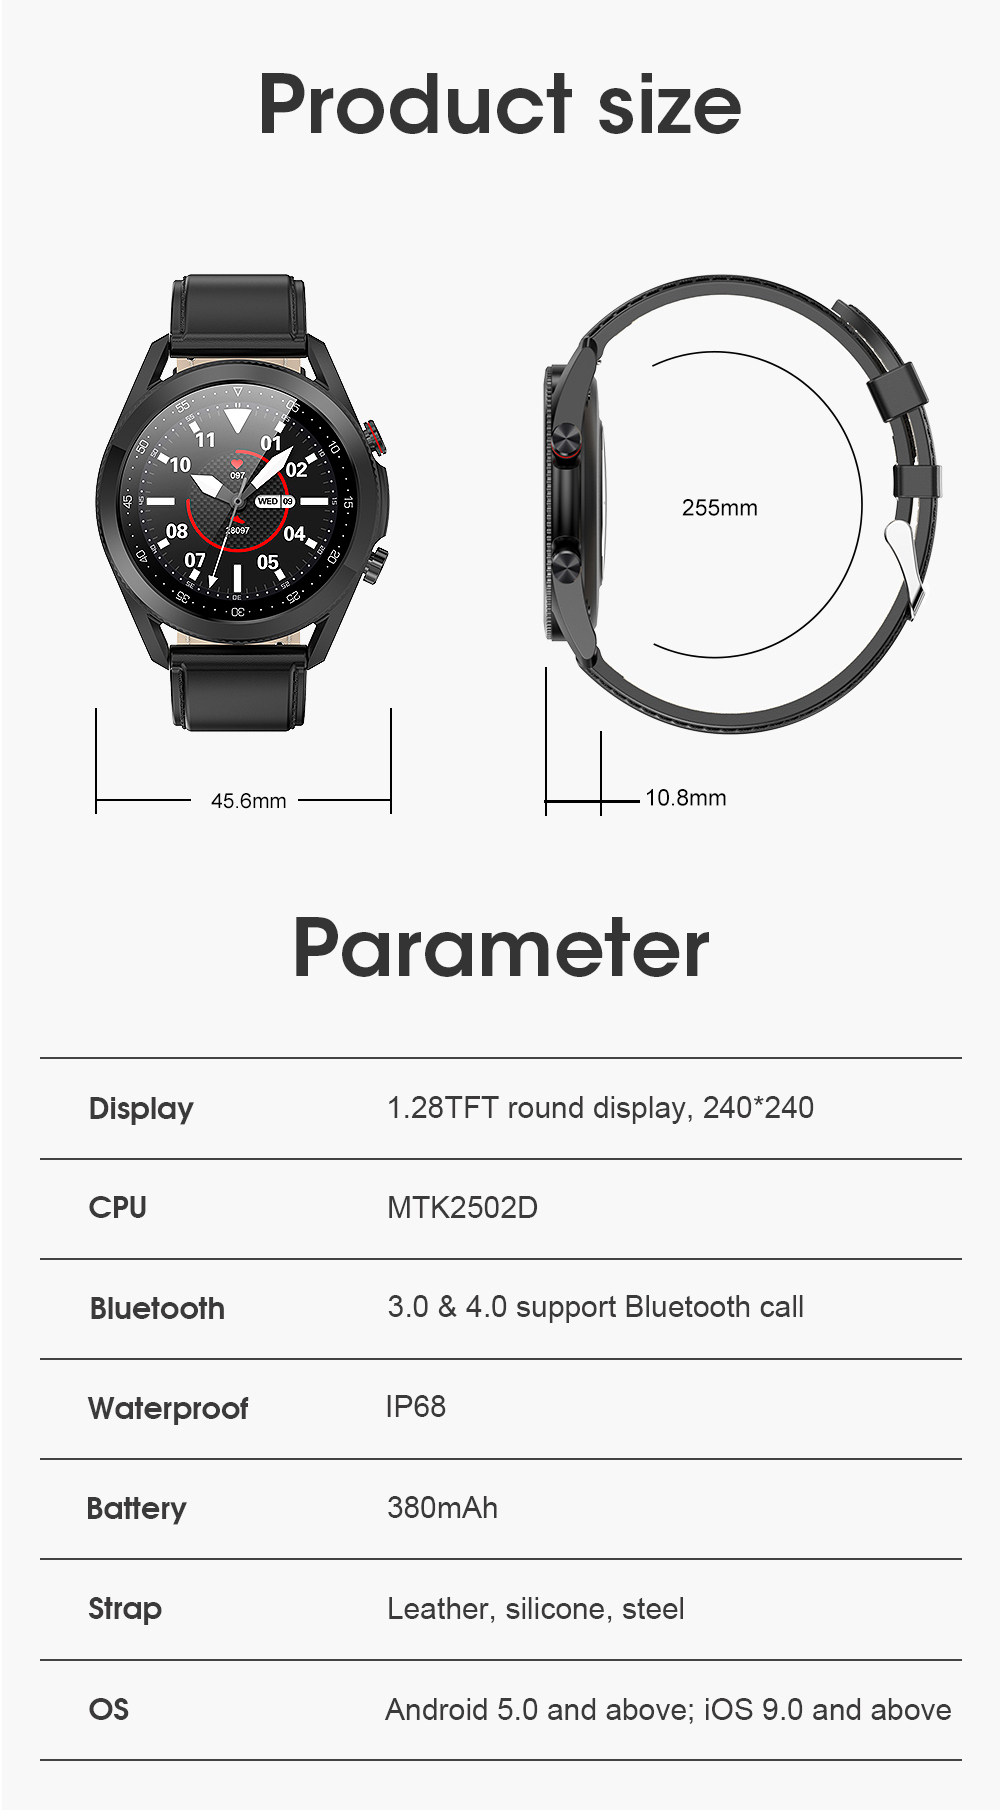 H3c9e01d9ec31473fa40708d05acd183aR Timewolf Smart Watch Men 2021 IP68 Waterproof Android Full Touch Sports Smartwatch Bluetooth Call For Samsung Huawei Android IOS